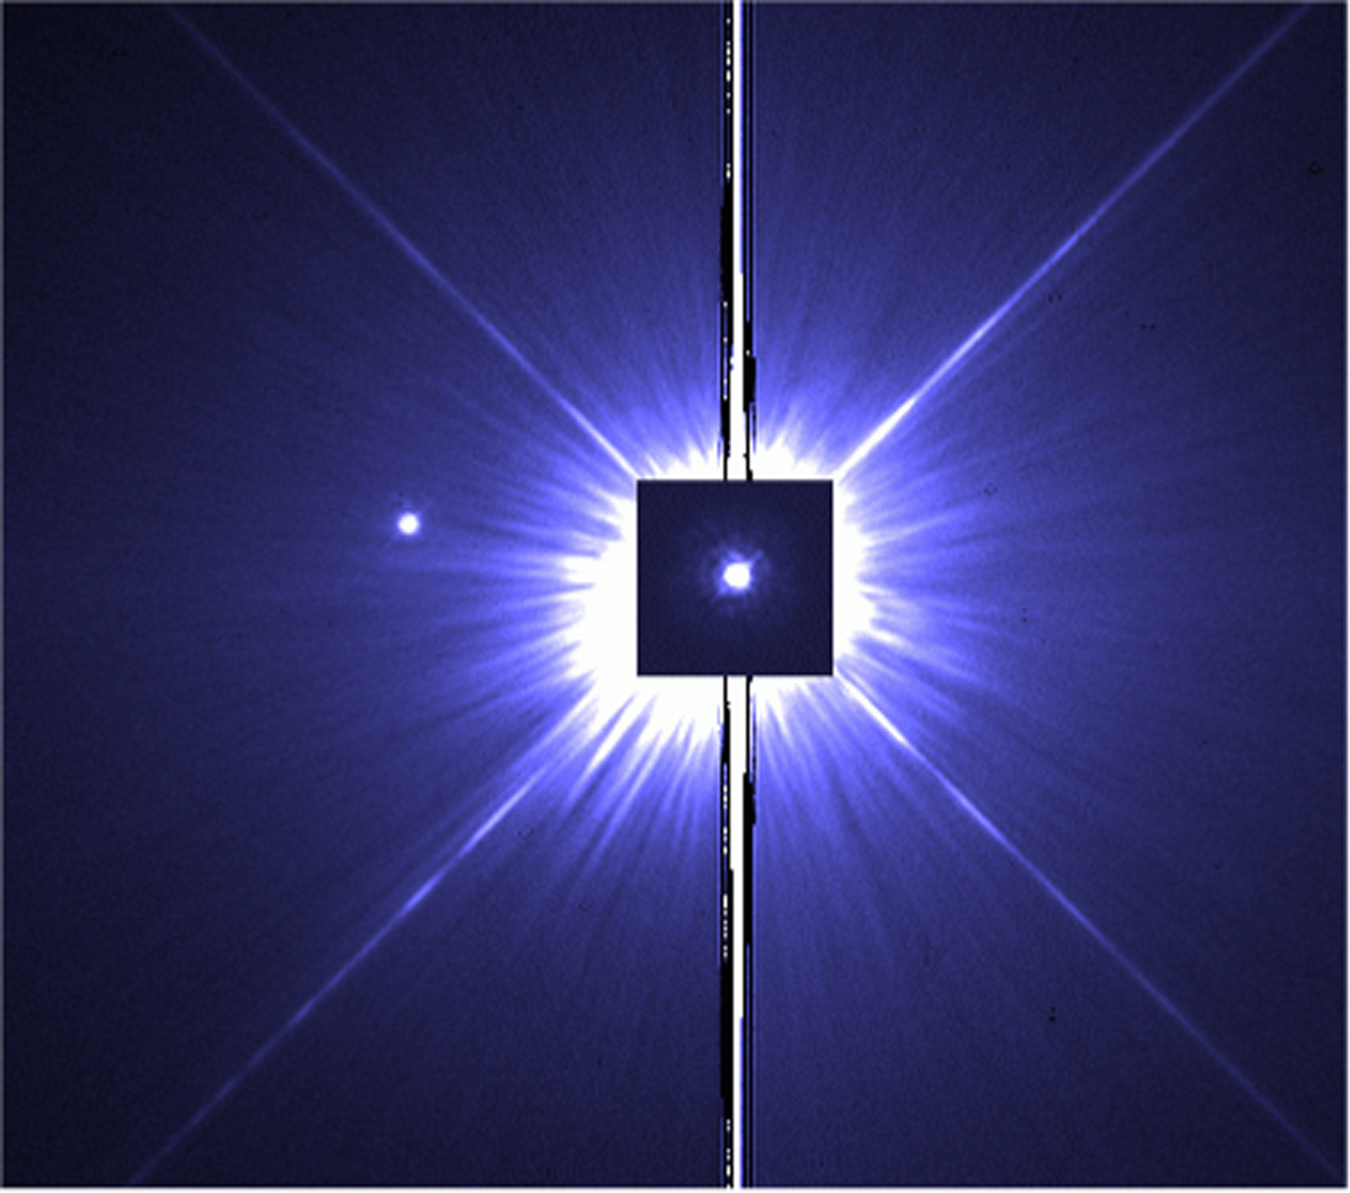 "In this false-color, near-UV Hubble image, a 0.14-s exposure of Procyon A is superposed on a 100-s exposure of Procyon B (in which Procyon A is saturated). The subgiant and white dwarf orbit each other with a maximum angular separation of less than 5"", creating a distinct challenge for astronomers to observe. [Bond et al. 2015]"